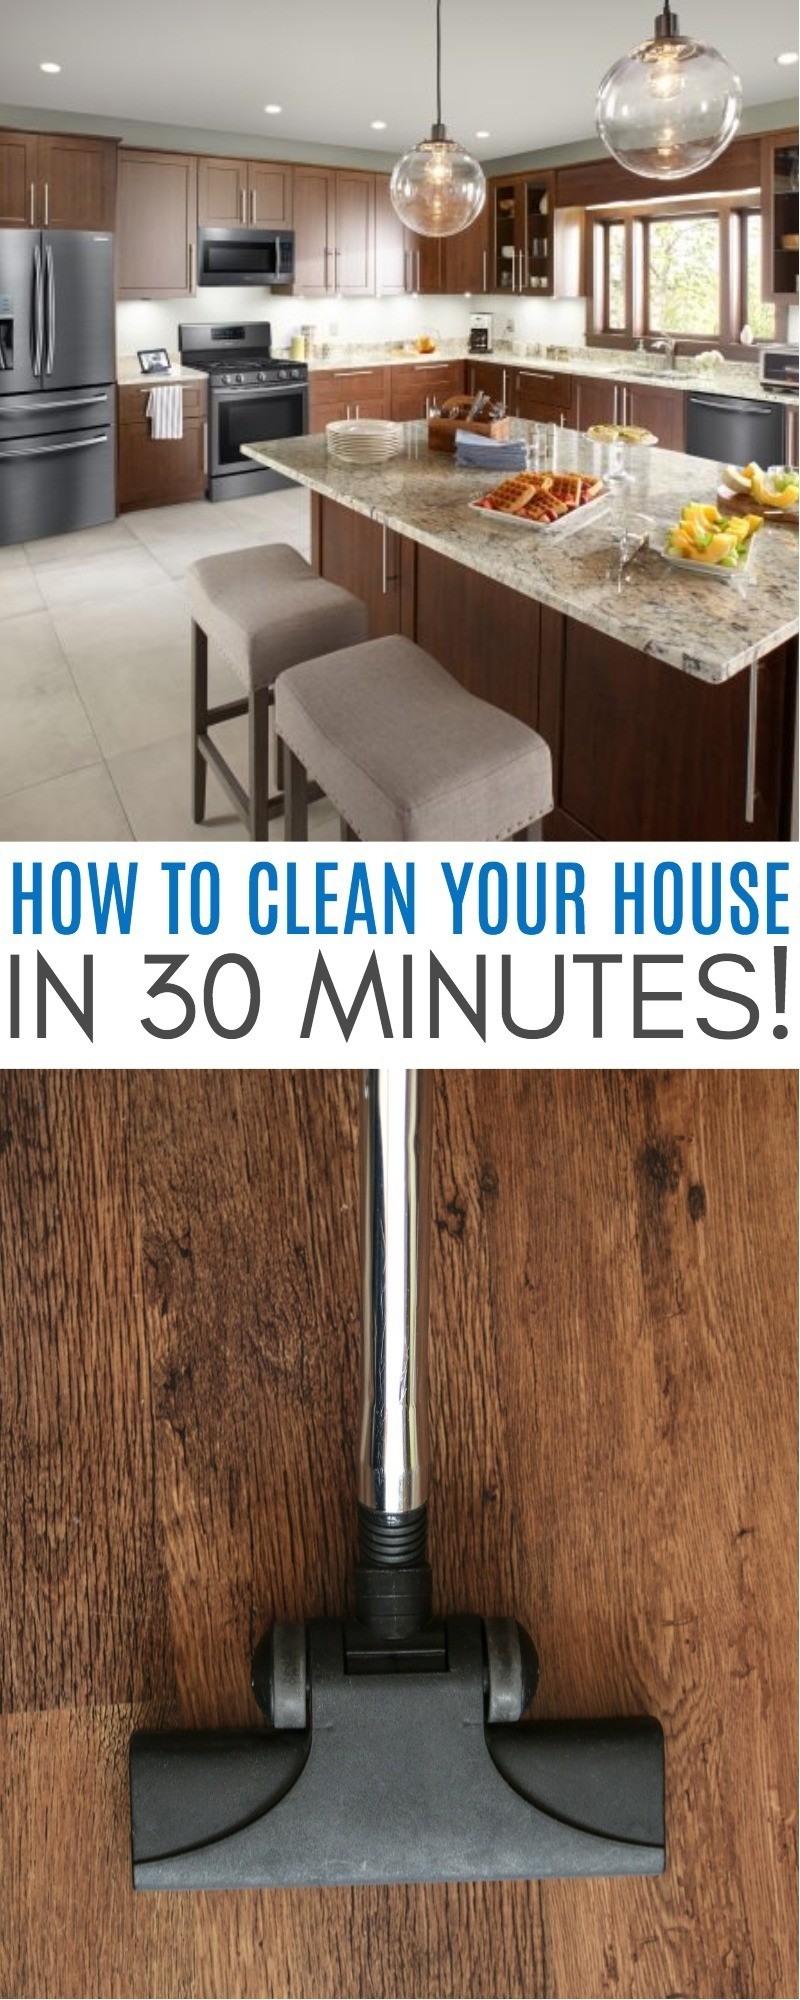 How To Clean Your House In 30 Minutes Before Your Guests Arrive - You need this list for the next time you need to quickly clean your house! quickly clean your house | how to clean your house quickly | weekly house cleaning routine | house cleaning schedule | fake clean house | clean your house in an hour | clean house fast tips | how to clean your room | honeyandlime.co